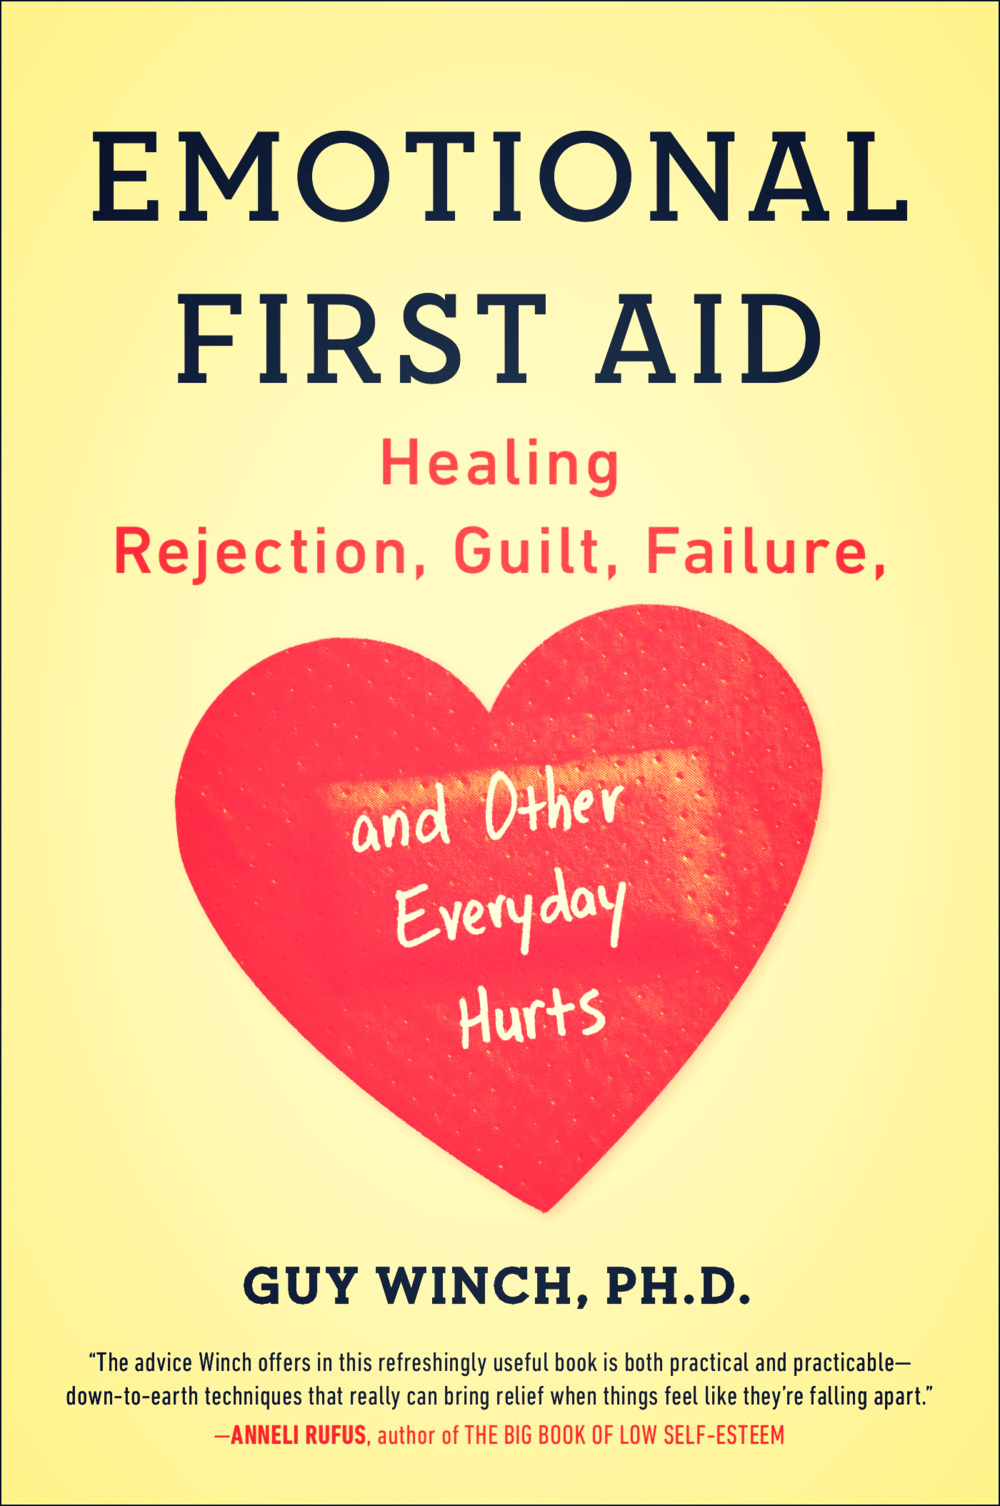 Emotional First Aid Dealing with failure, rejection, guilt, and other common mental injuries. By Guy Winch